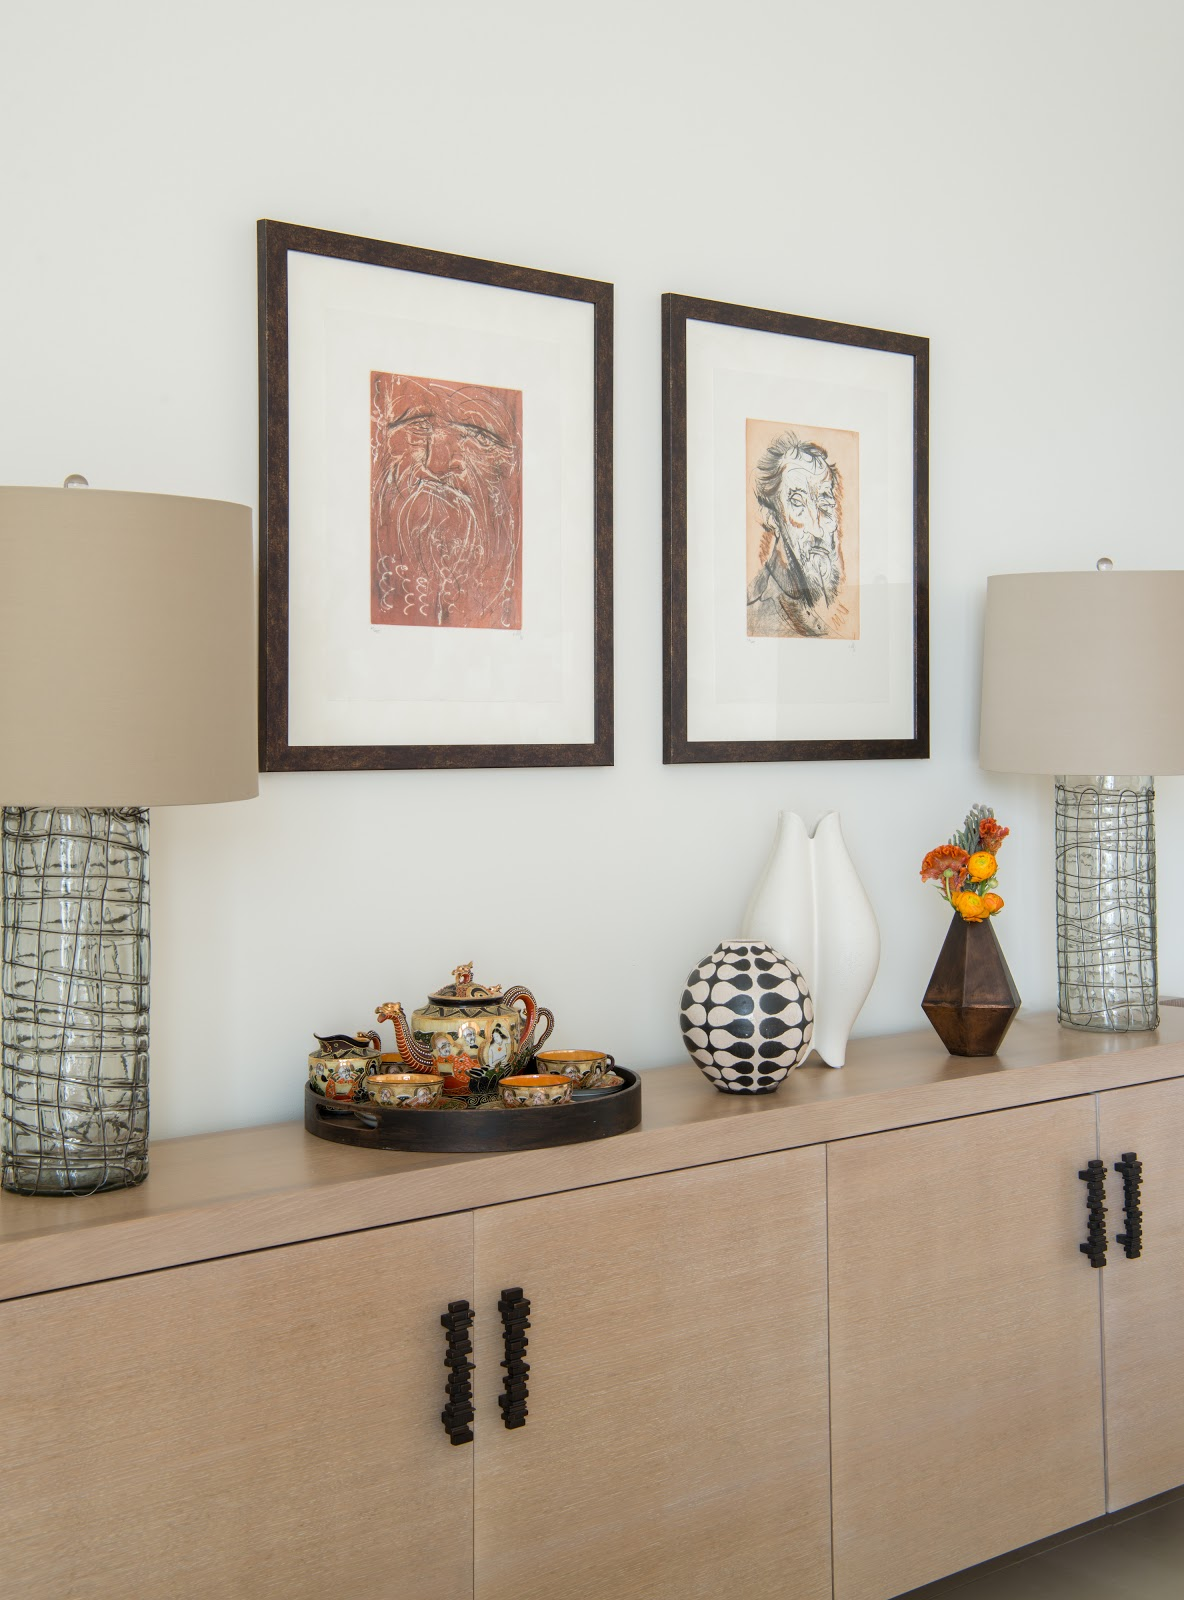 Collected high-rise with vintage tea set, industrial lamps, pottery and framed impressionist art - Dbh-biz.info Interior Design